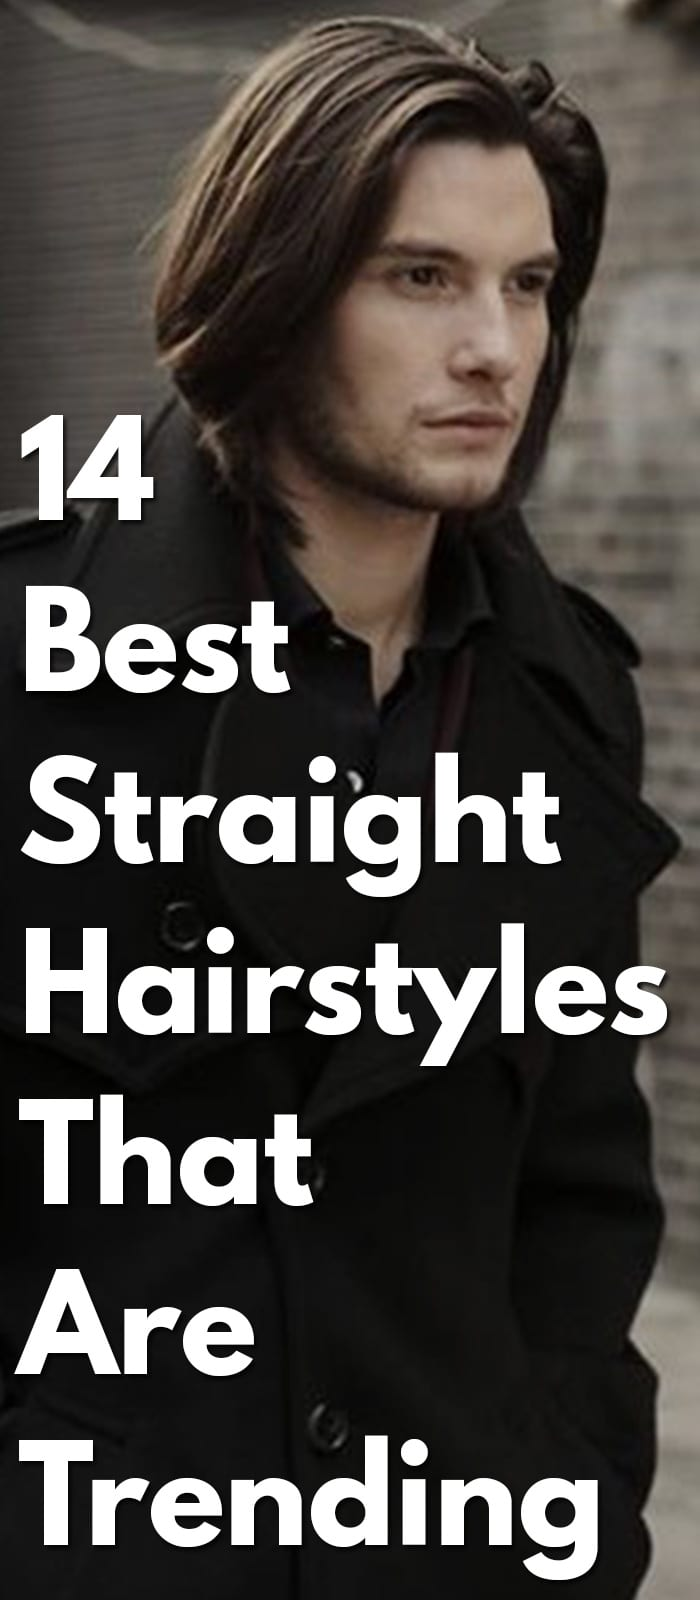 14-Best-Straight-Hairstyles-That-Are-Trending